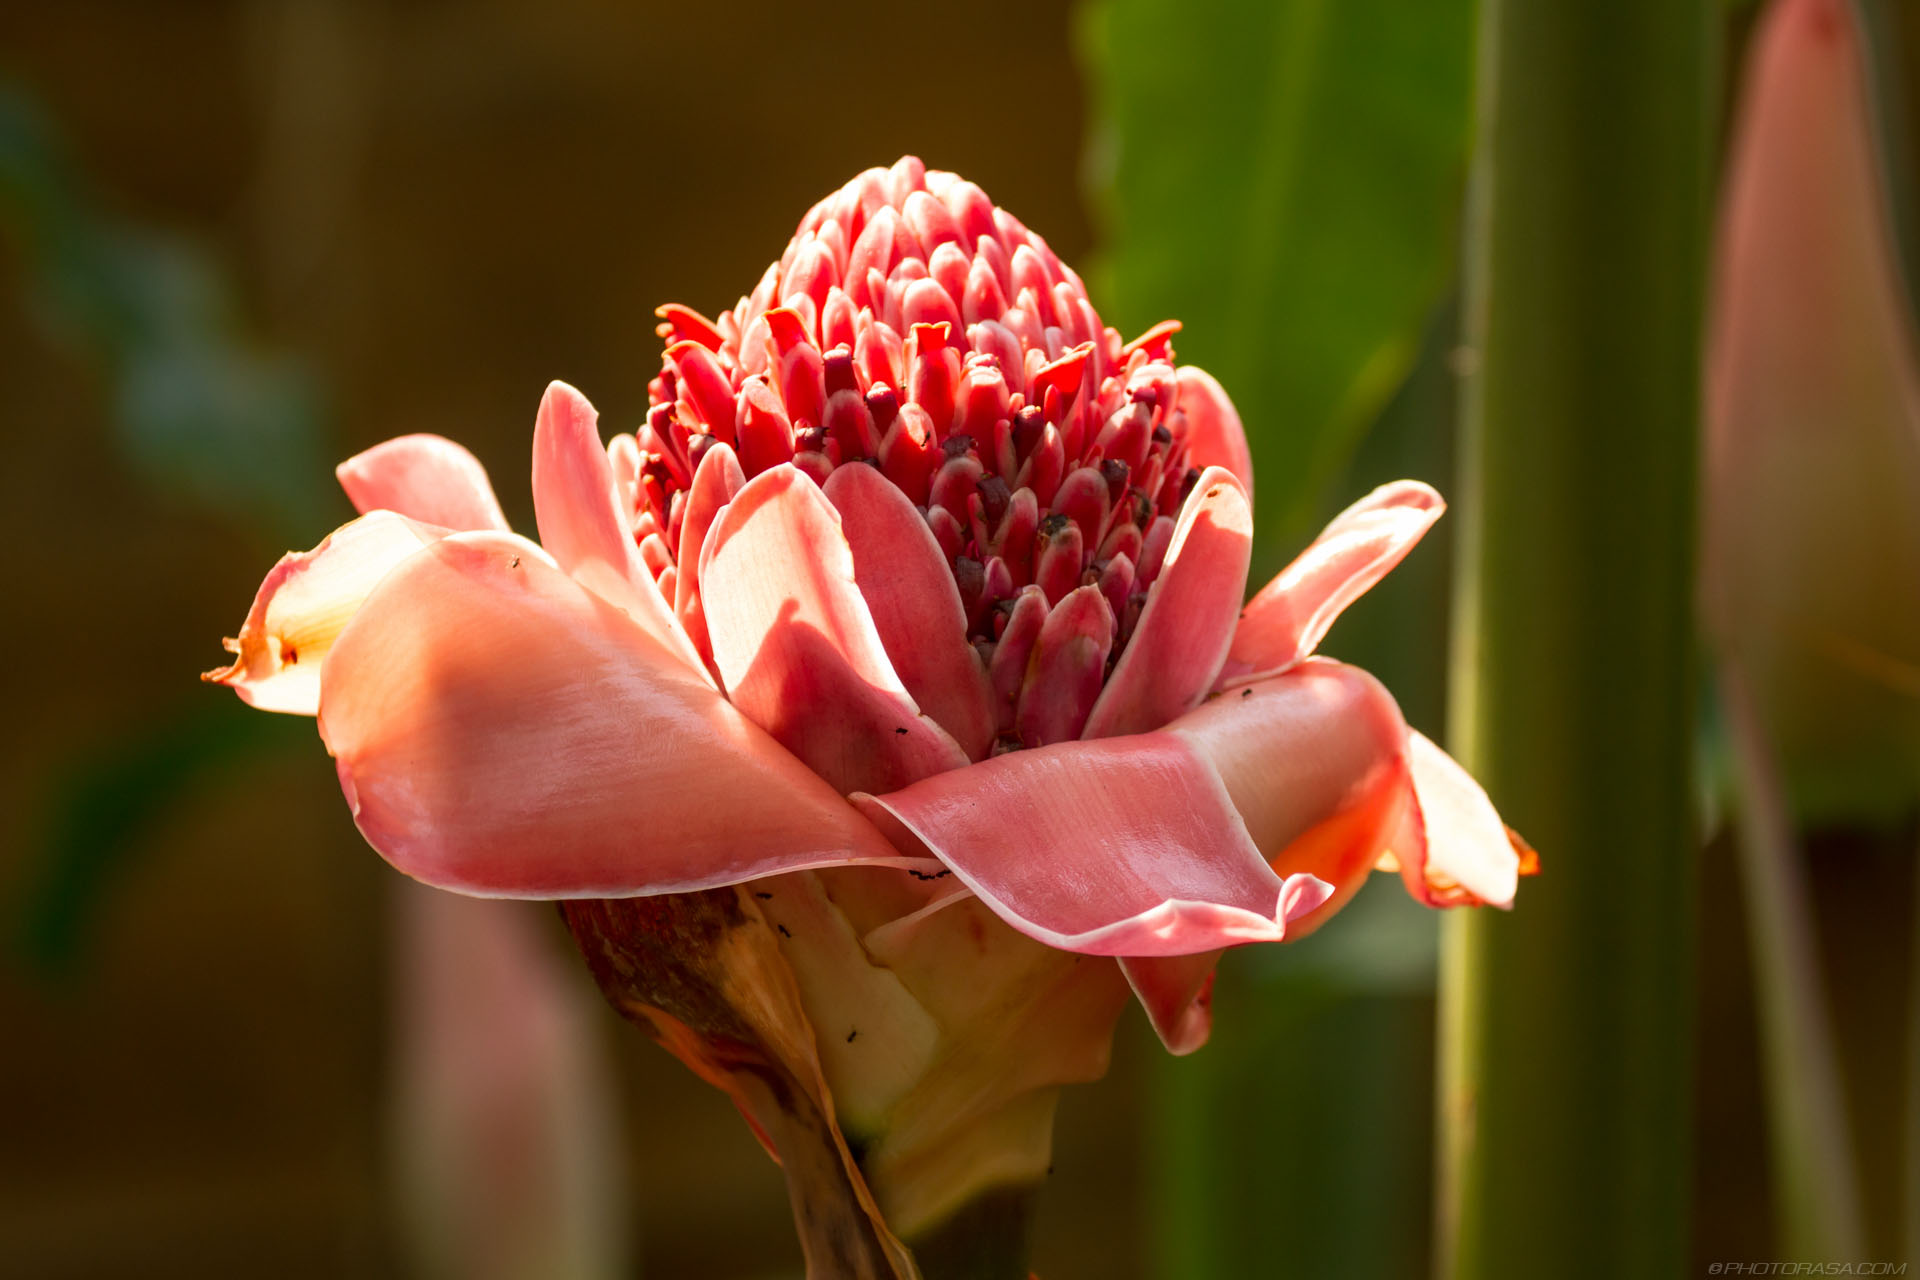 http://photorasa.com/strange-exotic-flowers/large-pink-succulent-flower/